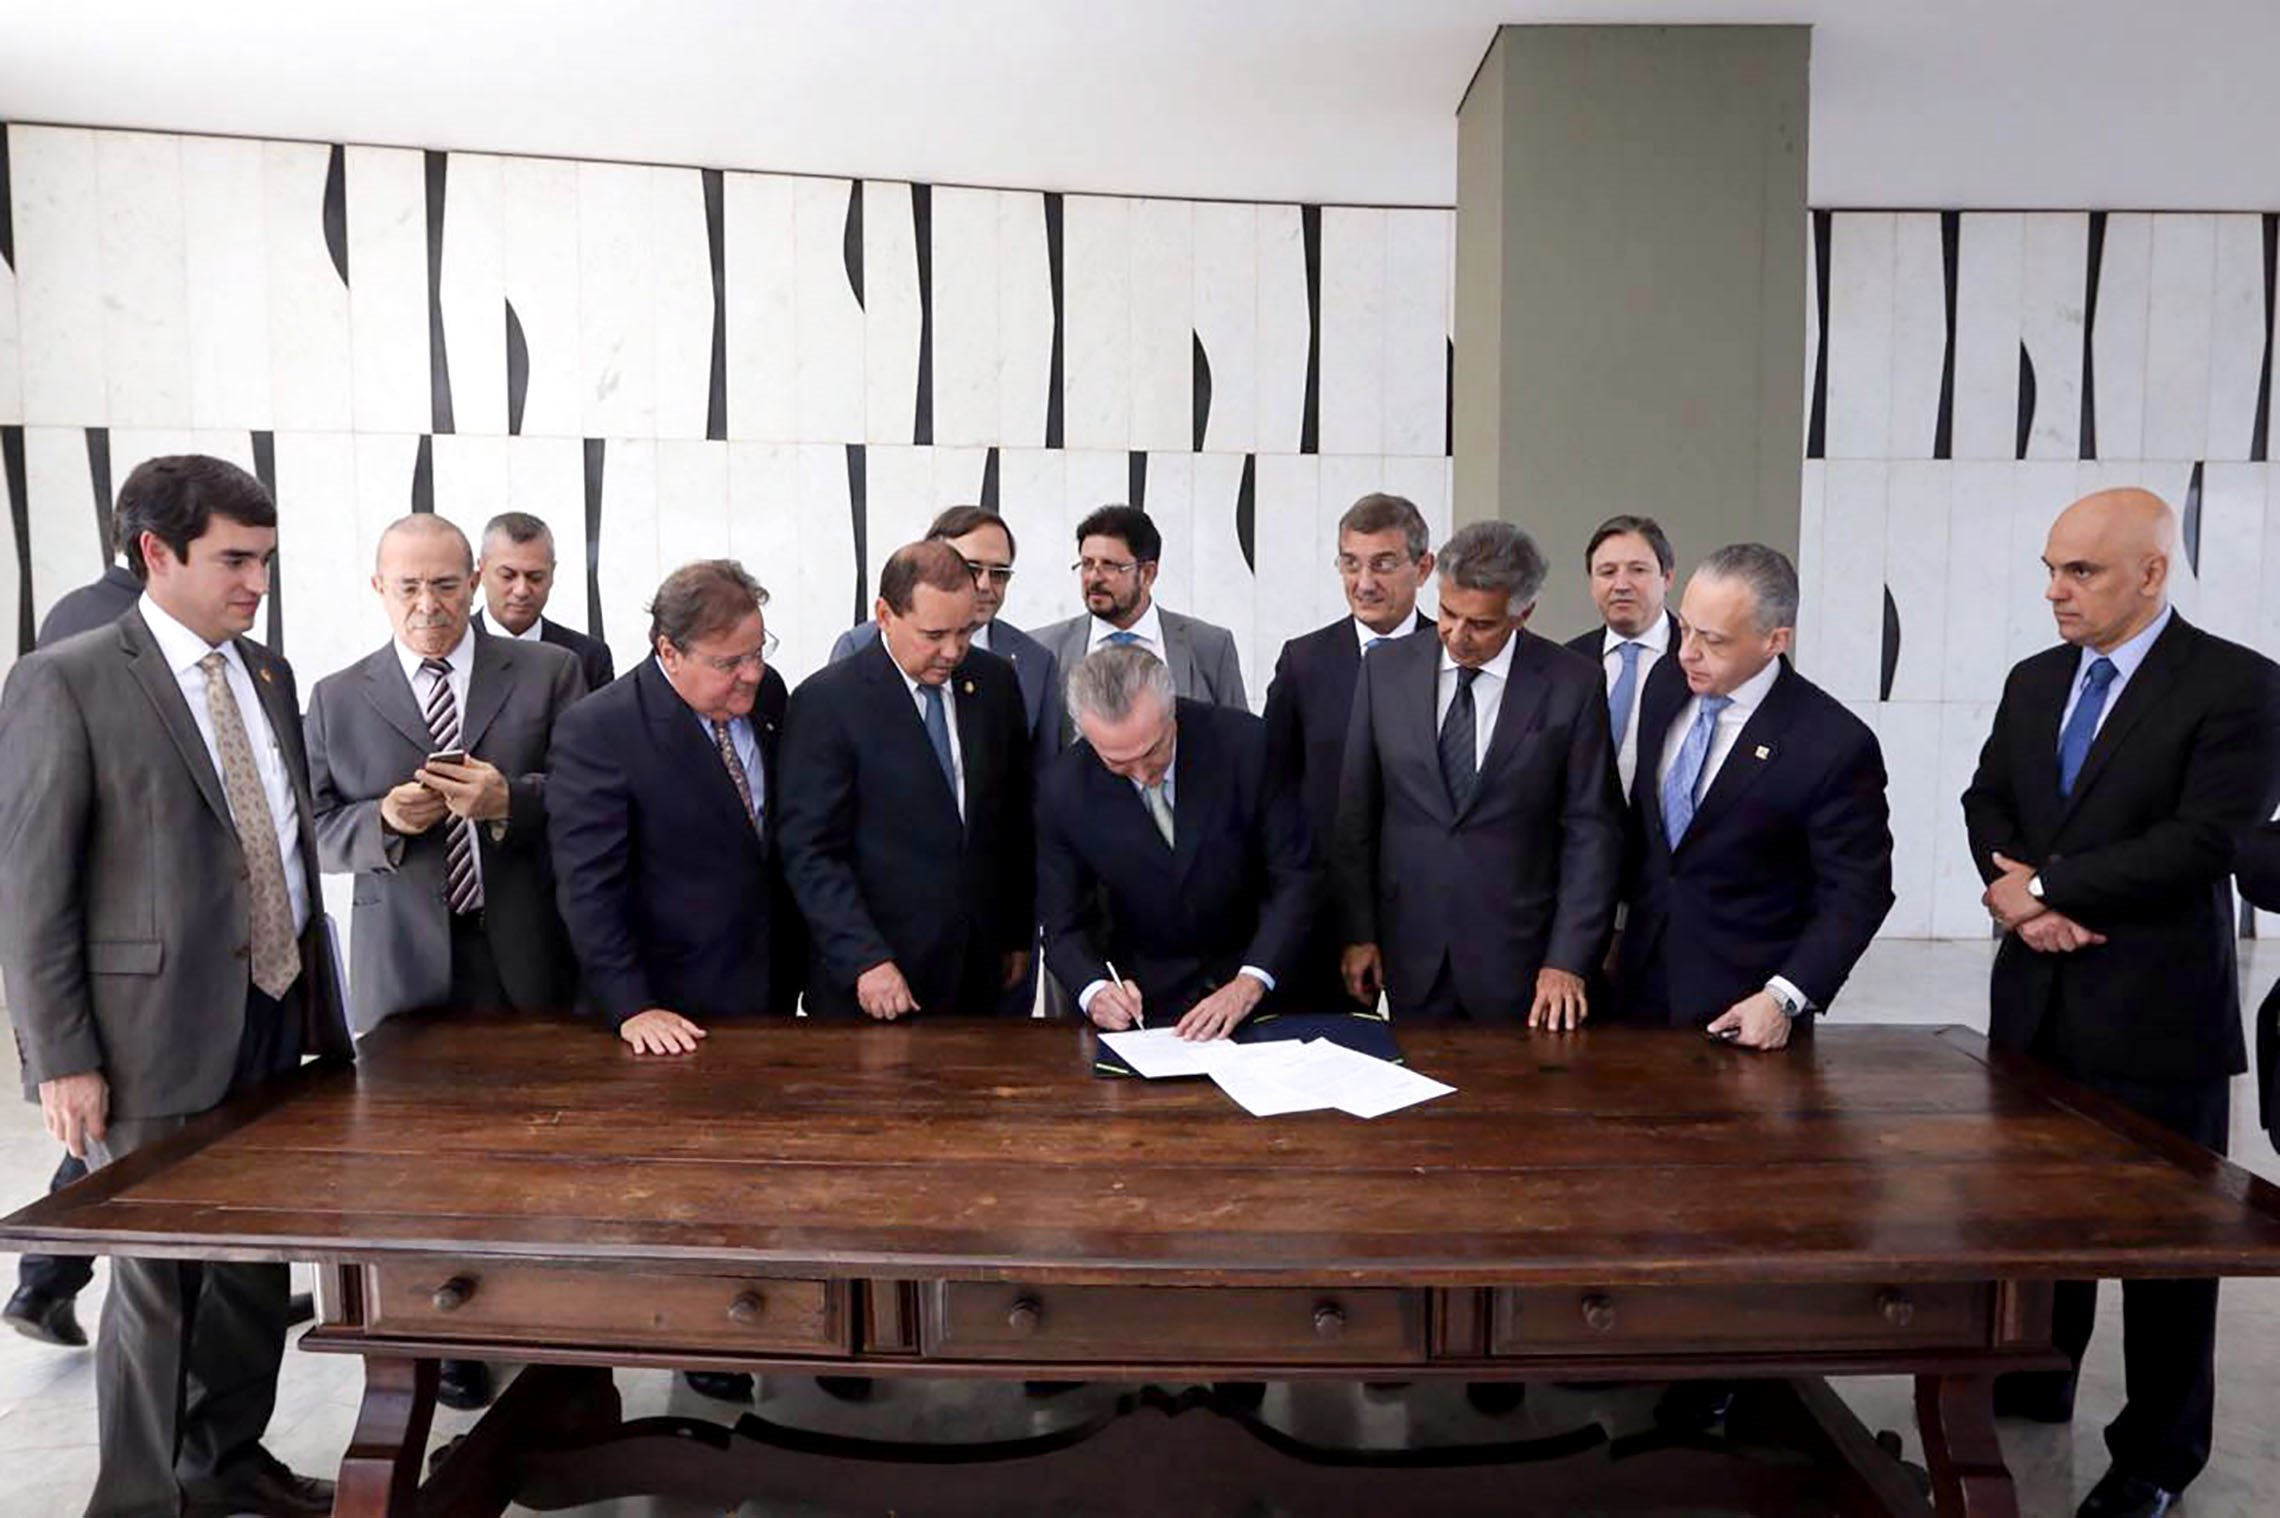 Brazilian acting President Michel Temer assumes as interim president at Jaburu Palace after the withdrawal of President Dilma Rousseff by the Senate in Brasilia on May 12, 2016. Temer, a center-right veteran with the backing of the markets, named former central bank chief Henrique Meirelles -- a champion of orthodox monetary policies -- as finance minister and former Sao Paulo governor Jose Serra as foreign minister, an adviser told AFP. / AFP PHOTO / Brazilian Vice Presidency / MARCOS CORREA / BEST QUALITY AVAILABLE